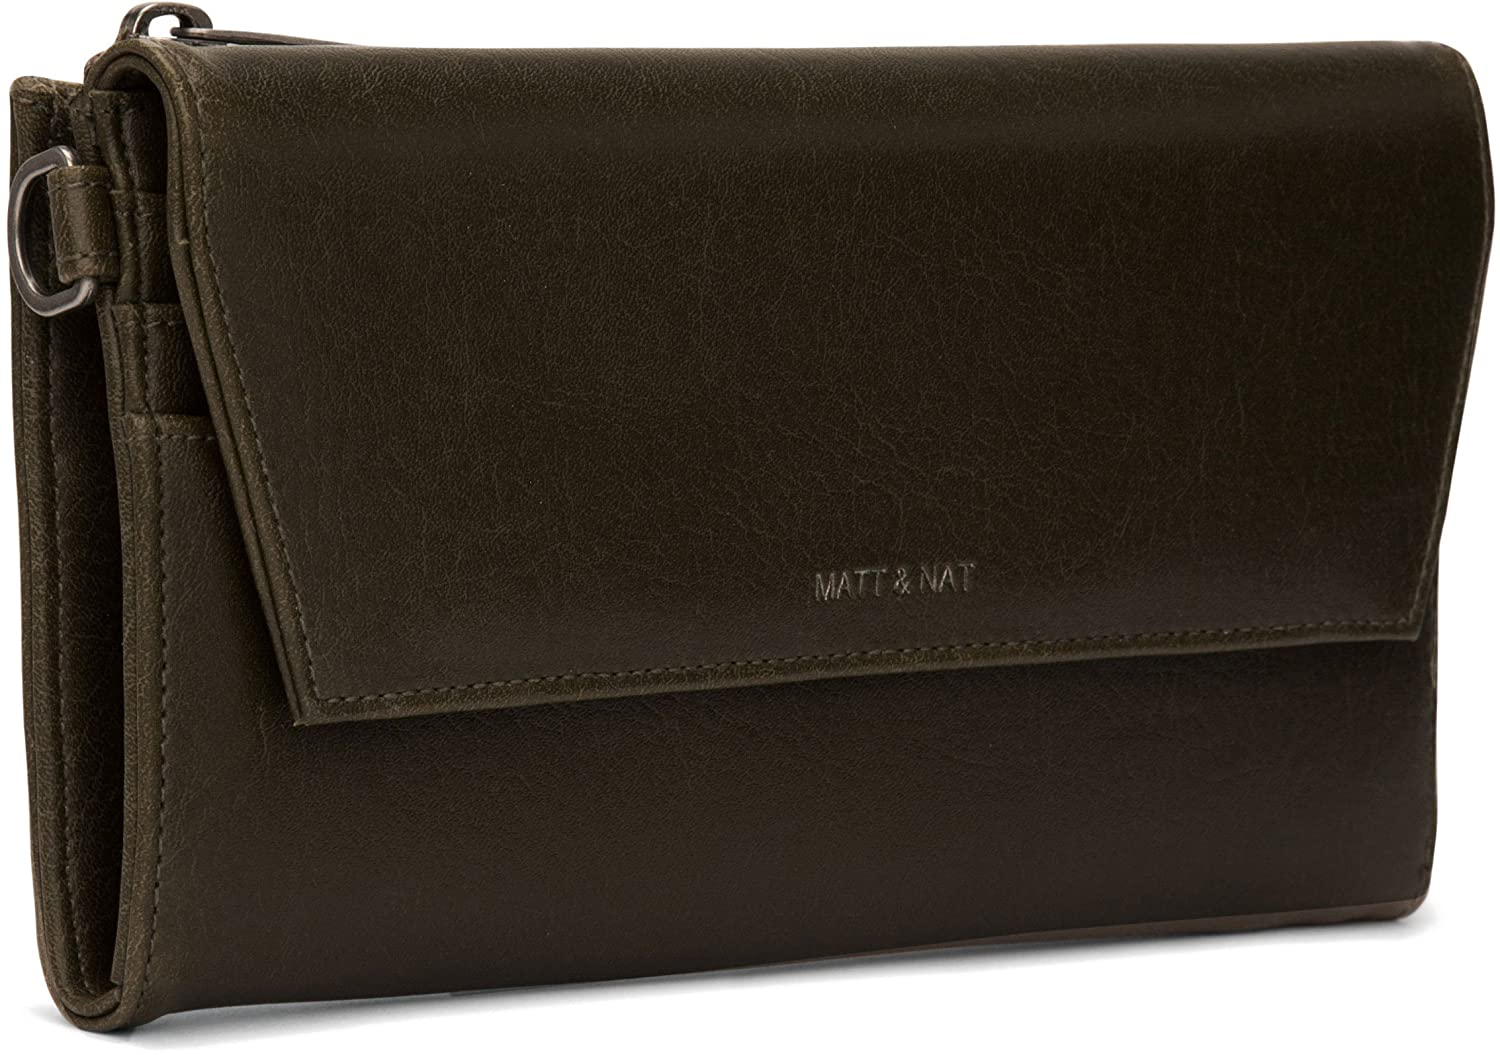 ebf3298c19f5 Matt and Nat Mercer Vintage Wallet, Kale at Amazon Women's Clothing store: